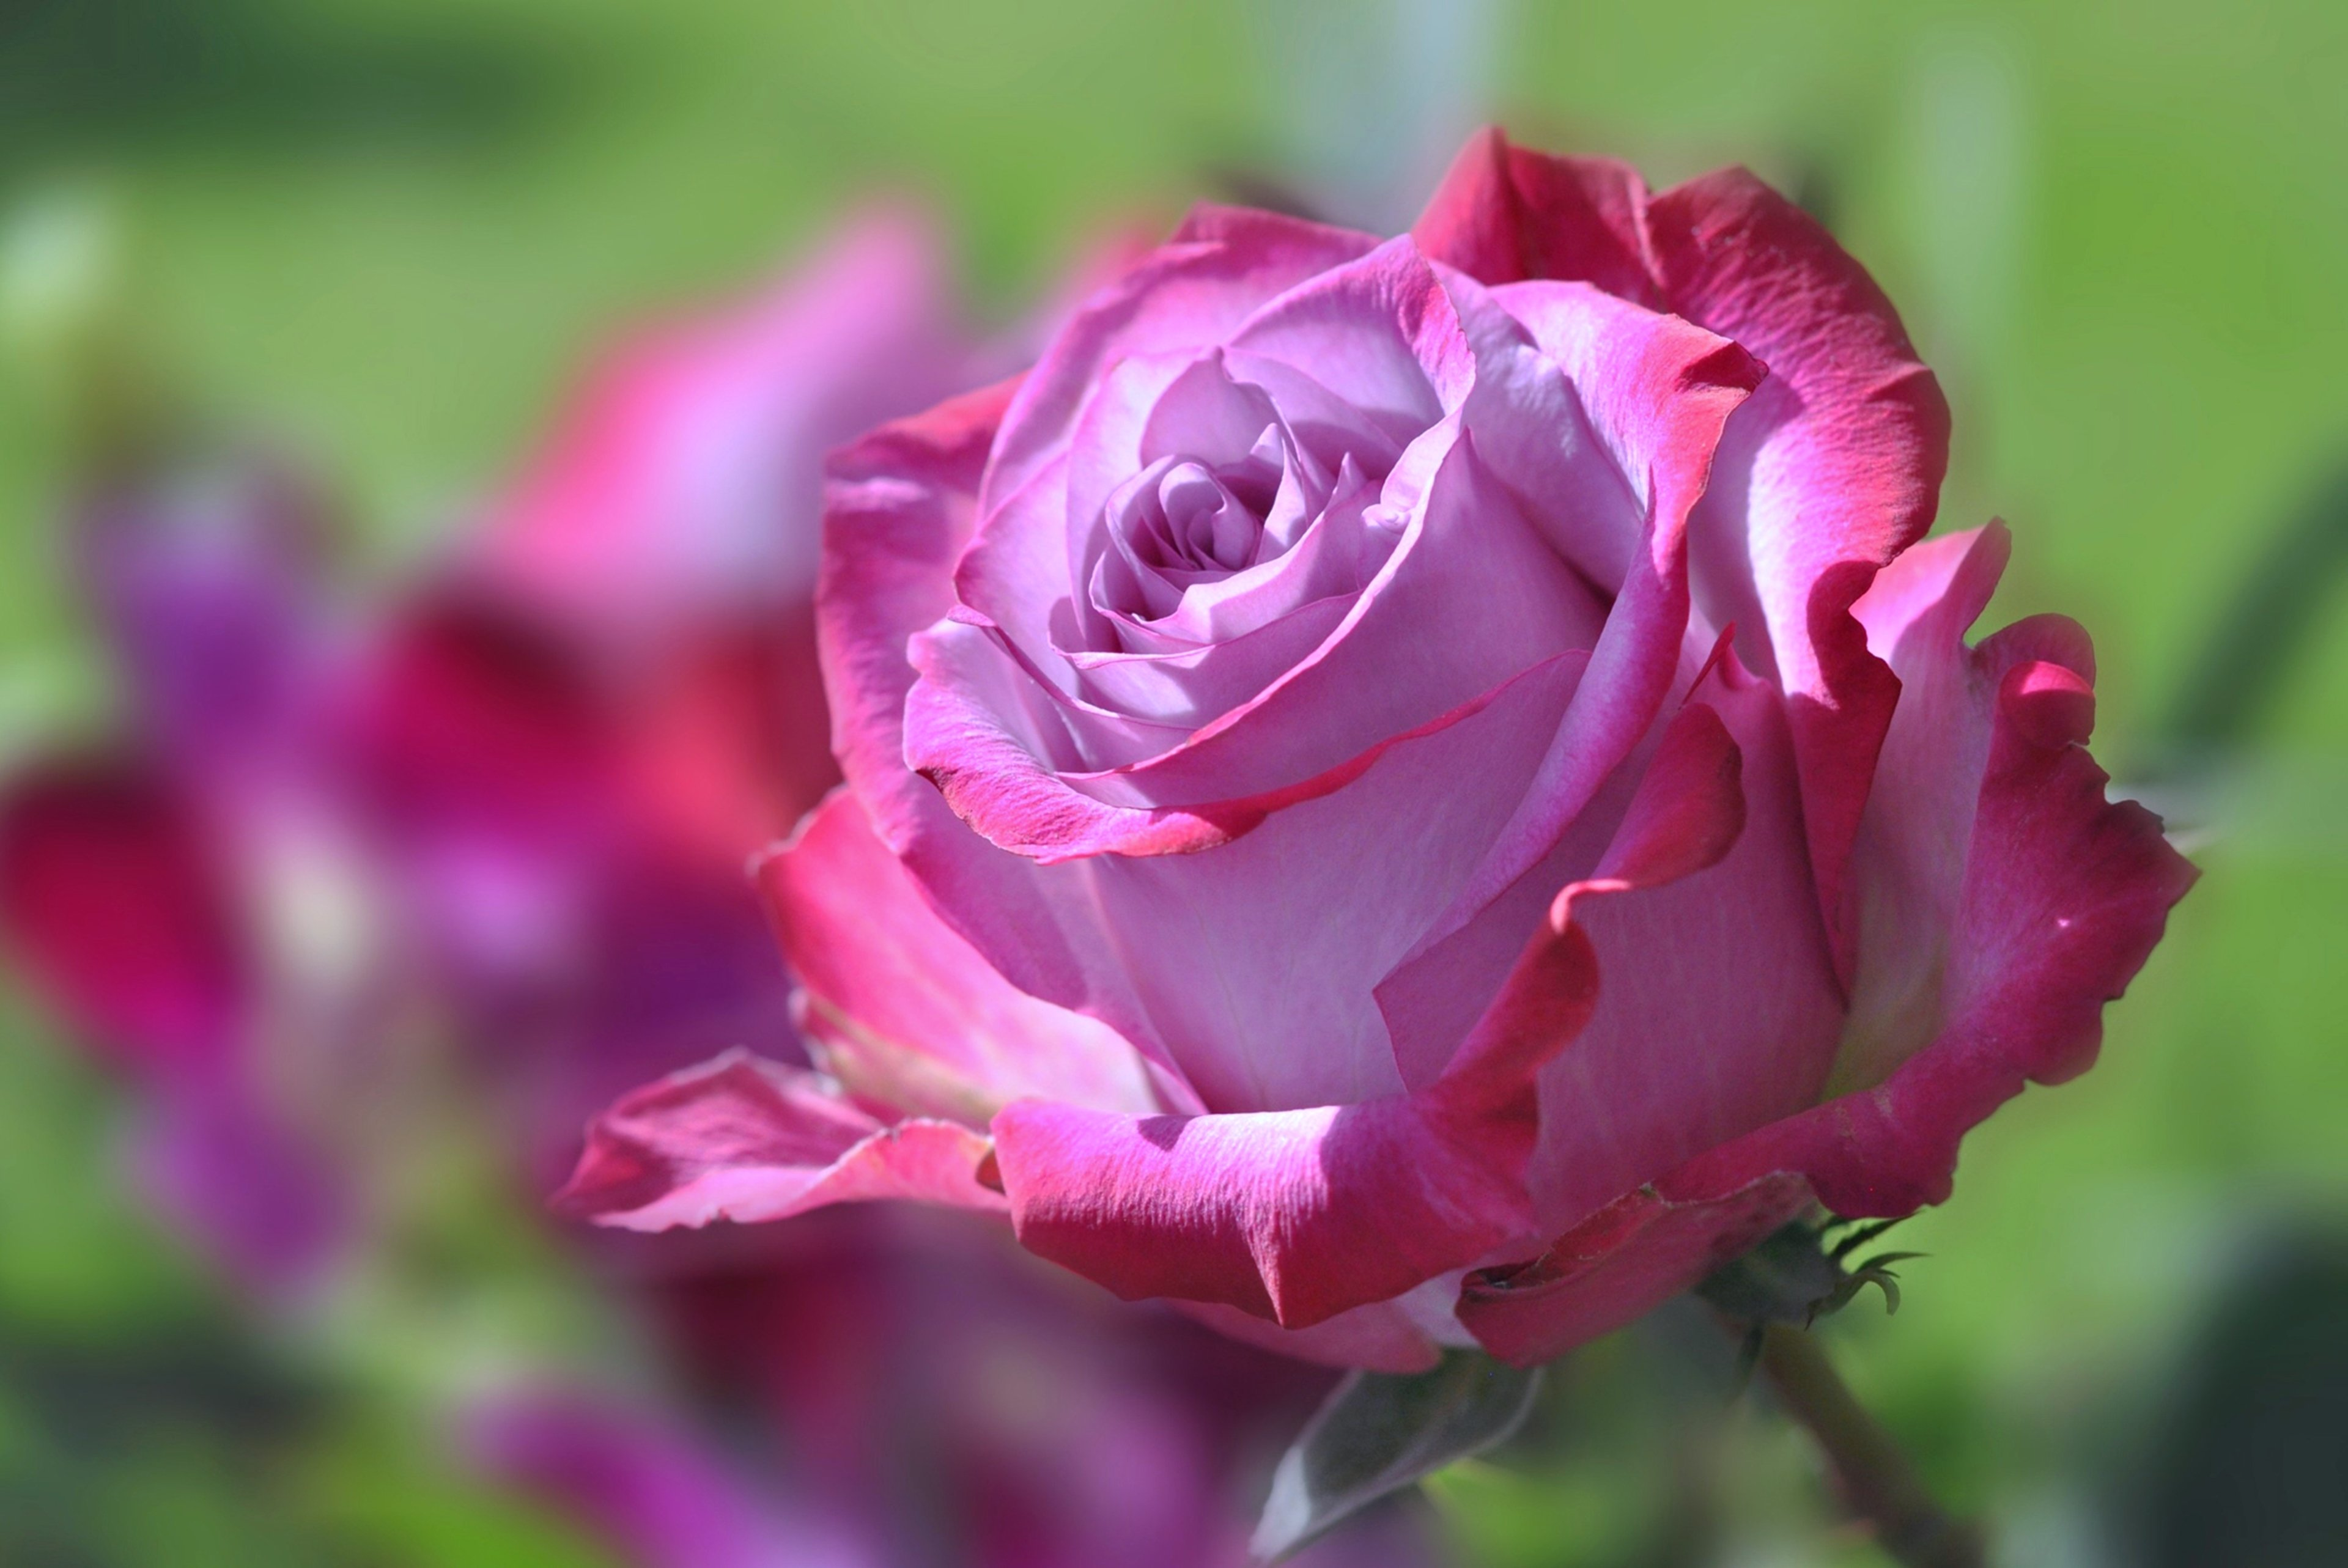 Rose flowers spring nature landscape love emotions for beauty wallpaper   3840x2565   629482 ...